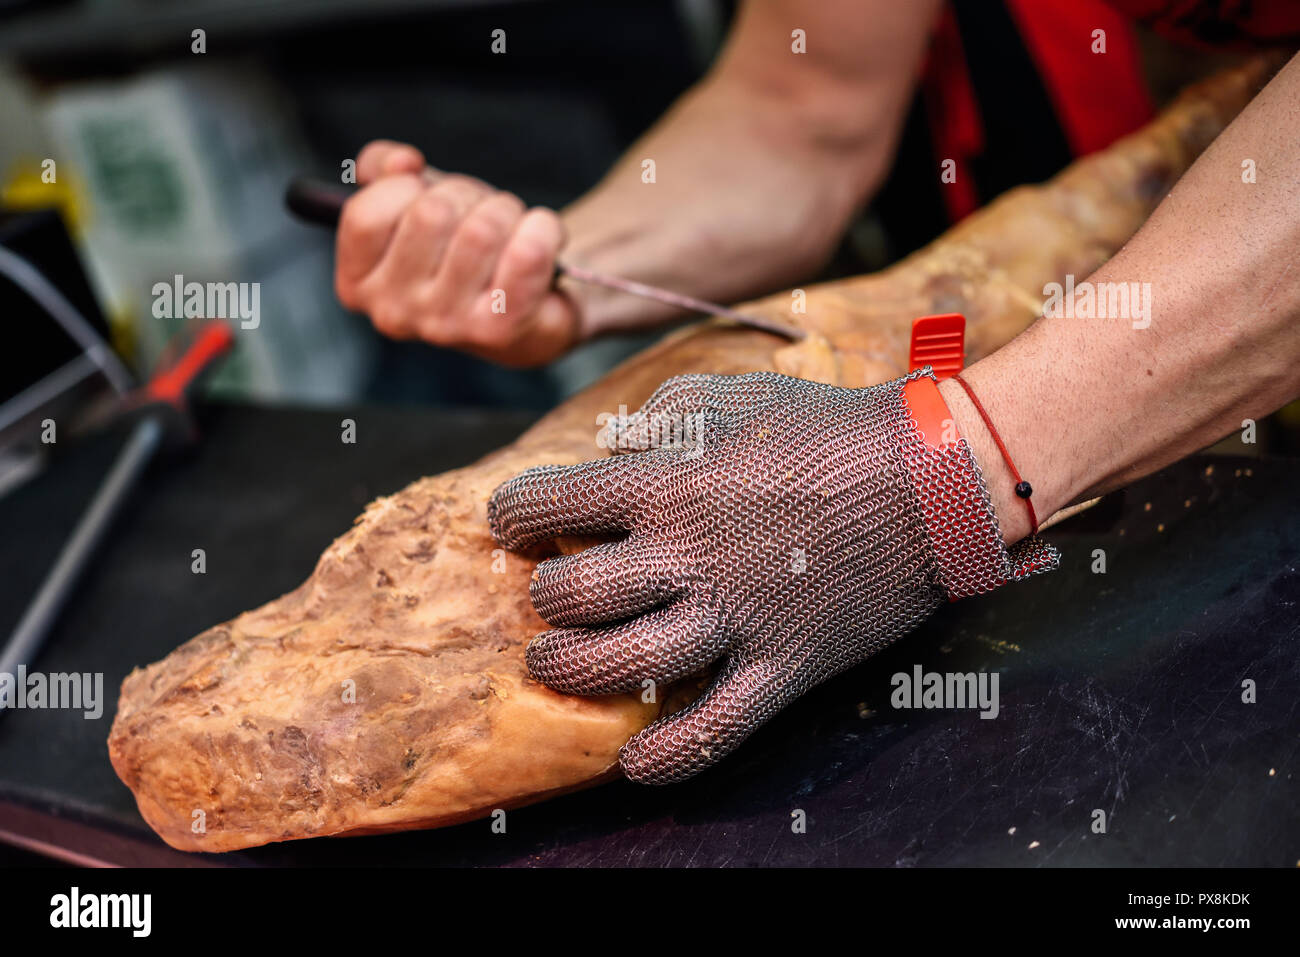 Close-up of butcher boning a ham in a modern butcher shop with metal safety mesh glove - Stock Image